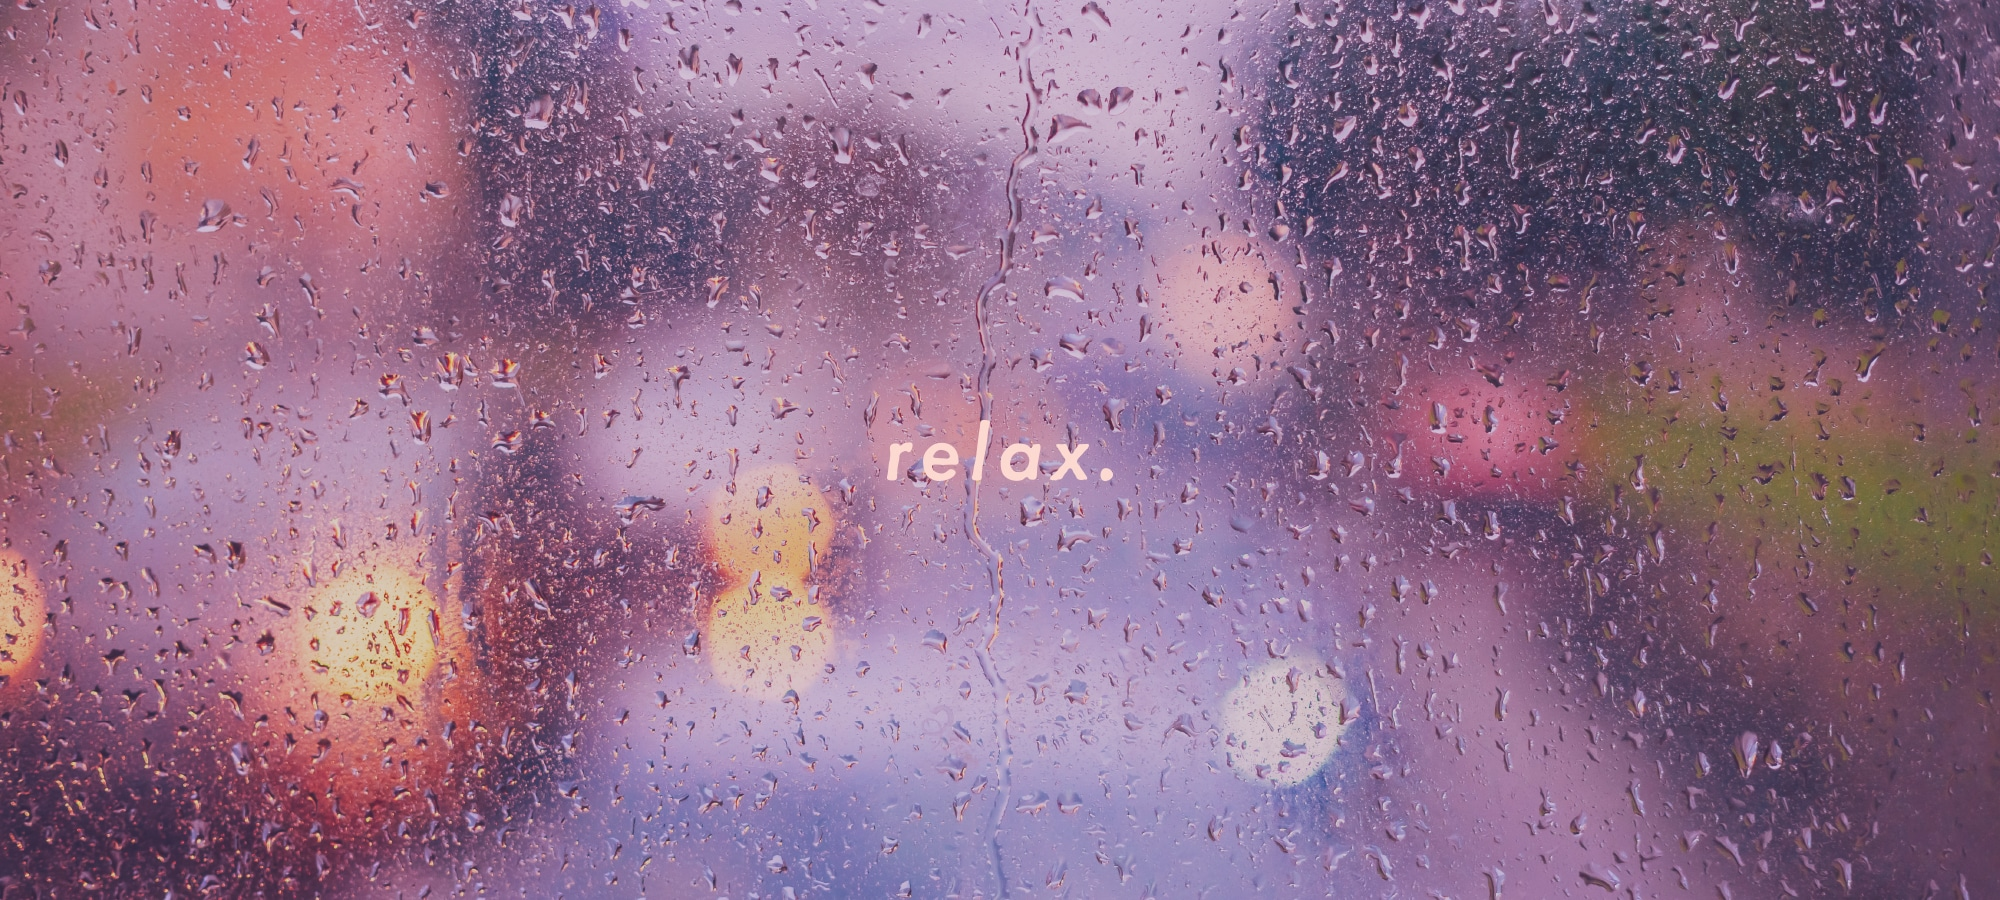 Relaxing rain on window image